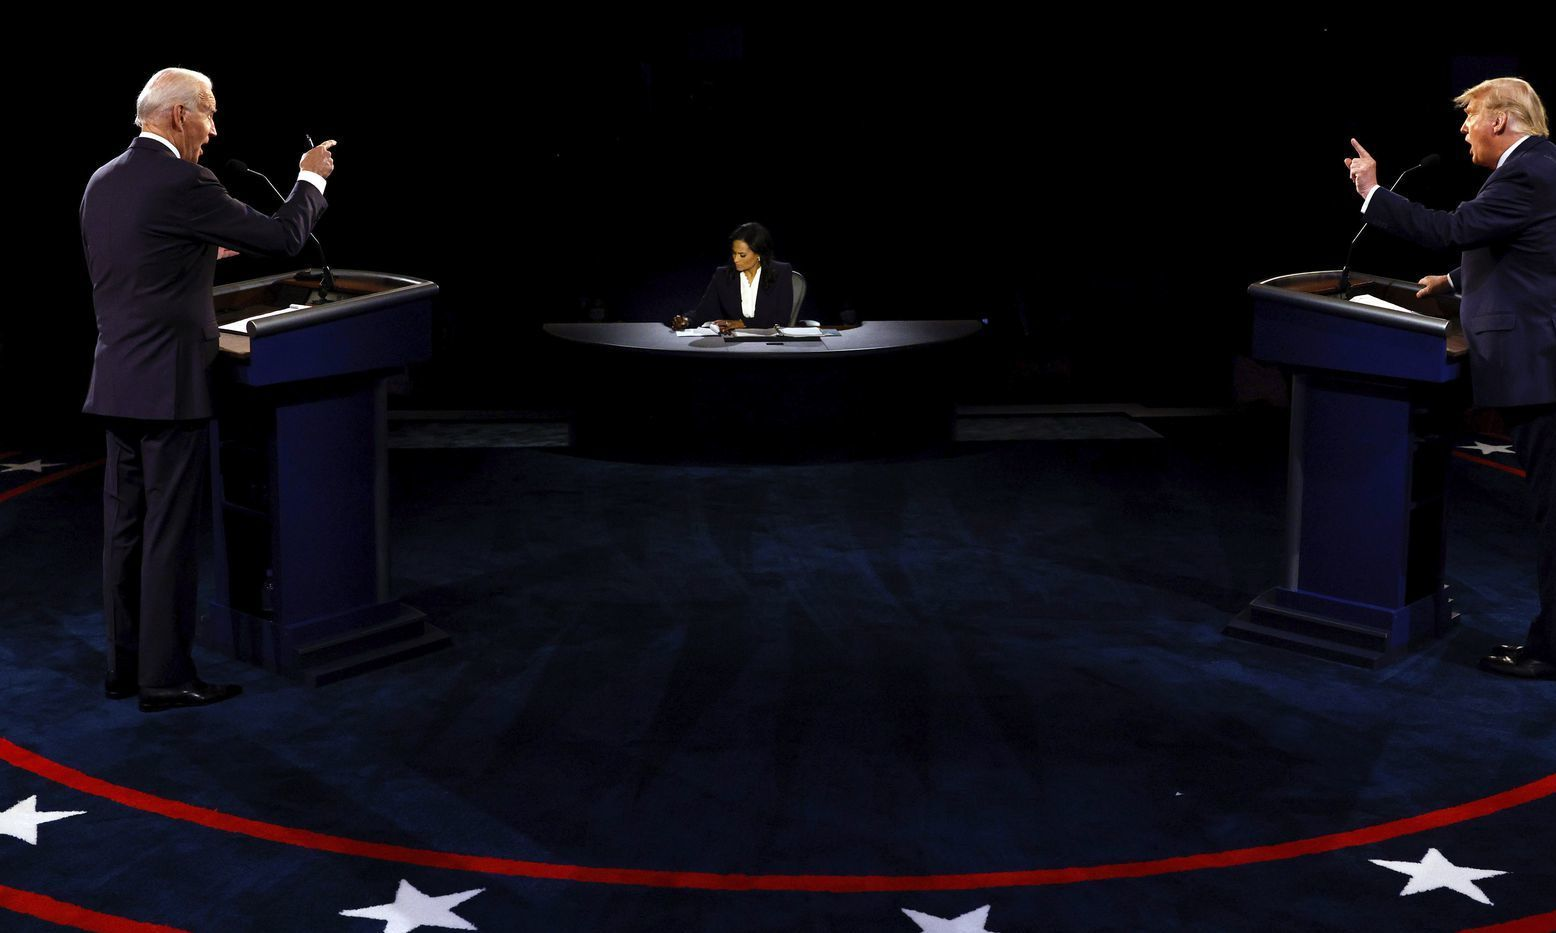 Less chaotic final Trump and Biden debate covers coronavirus, racism, personal attacks